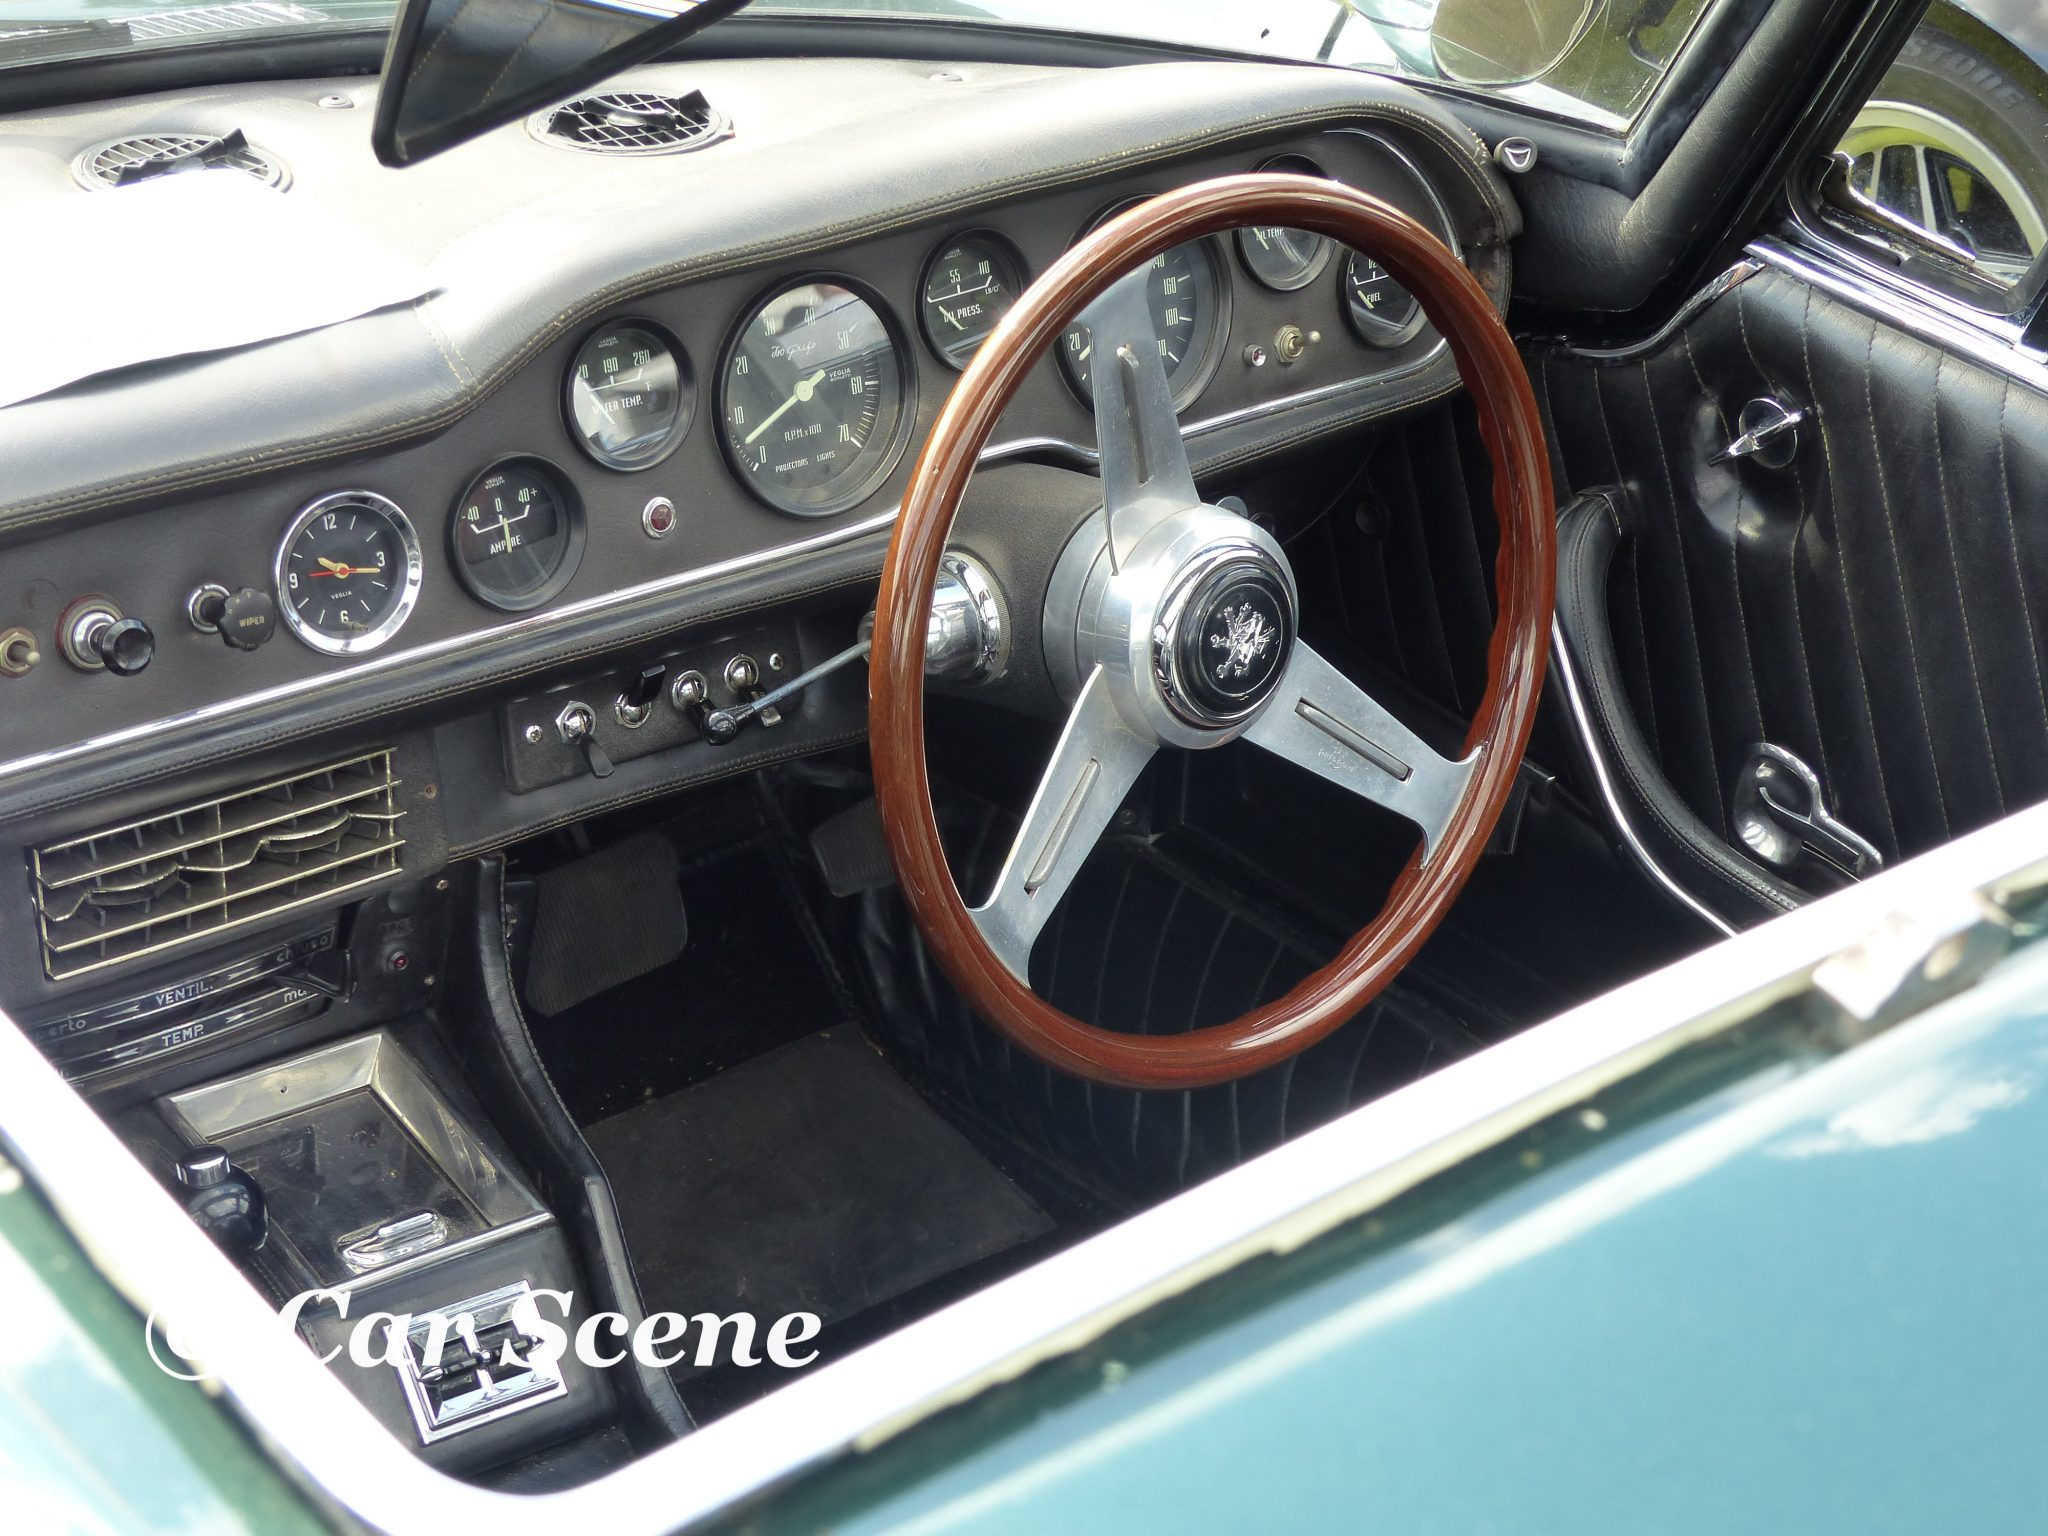 c.1968 Iso Griffo cockpit view